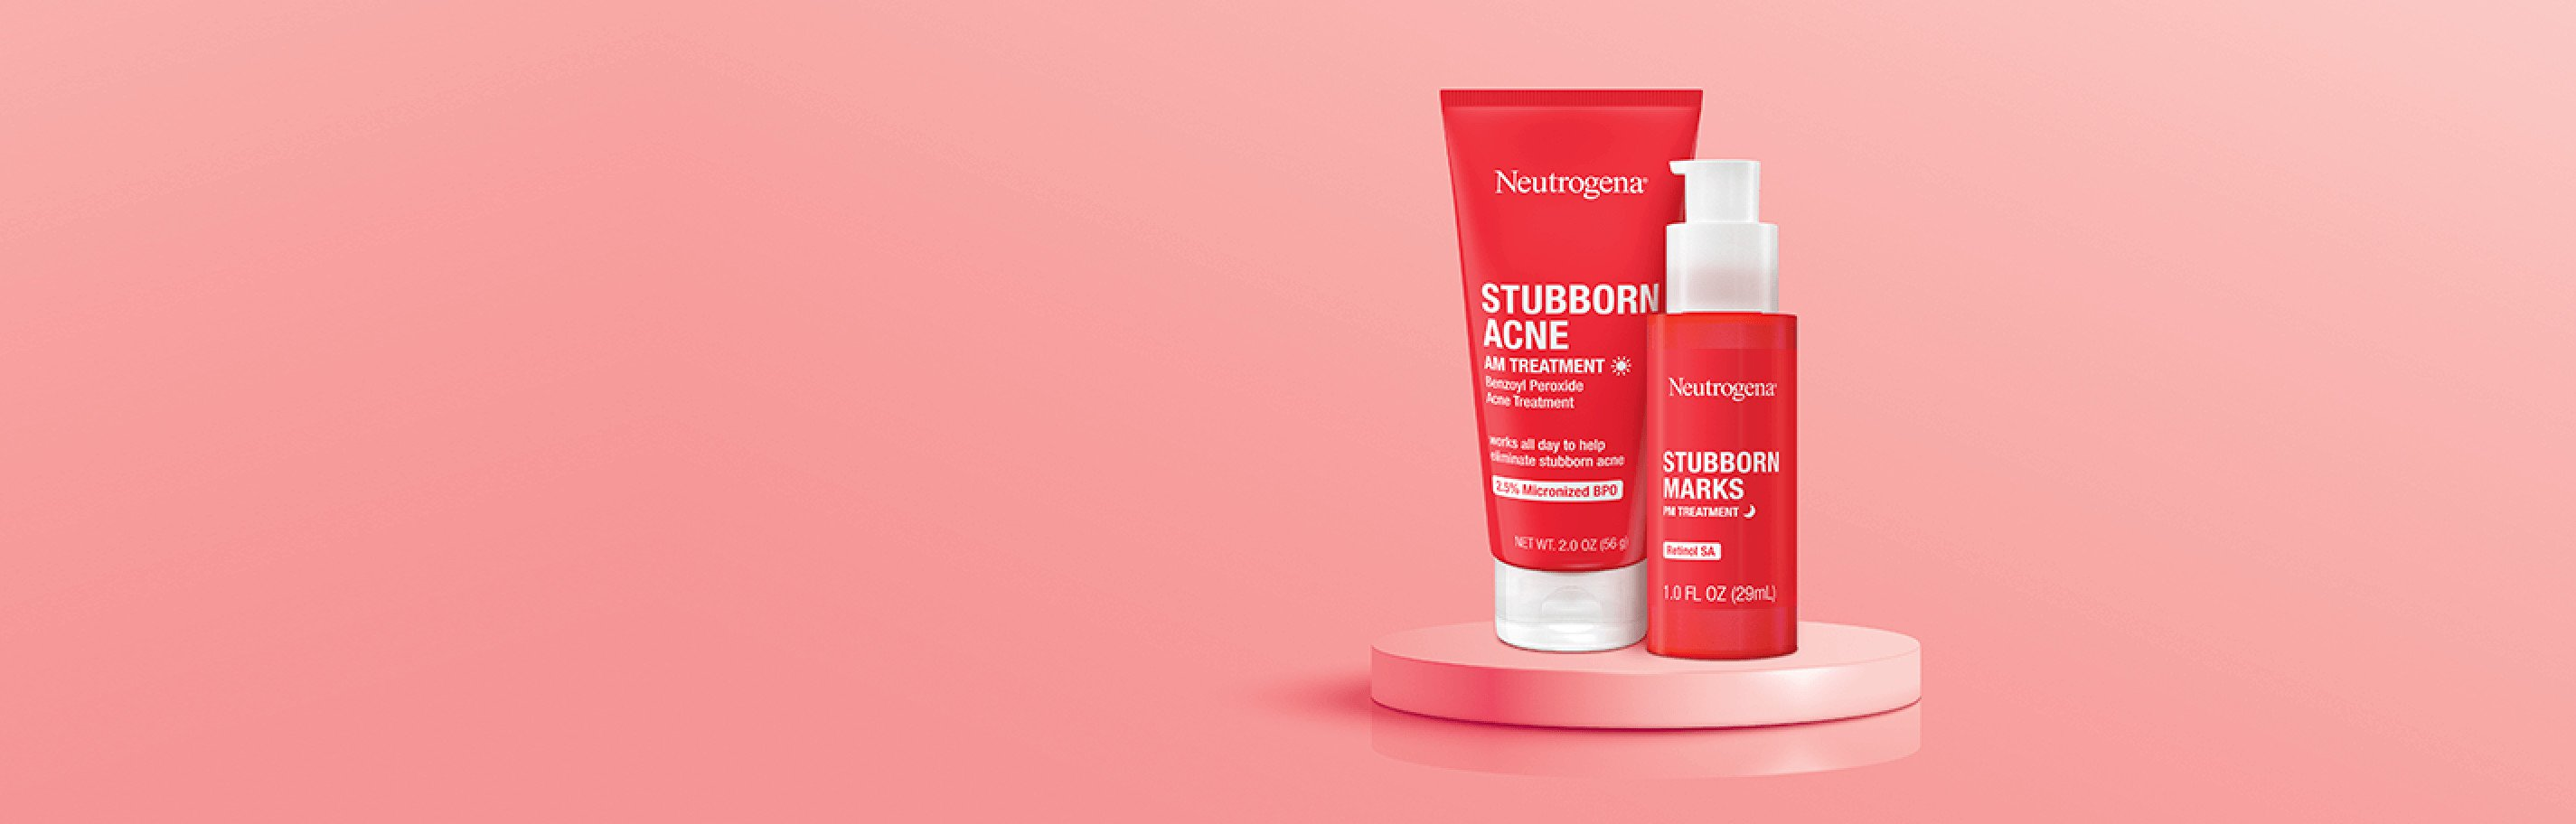 Stubborn Acne AM tube with Stubborn Marks PM bottle